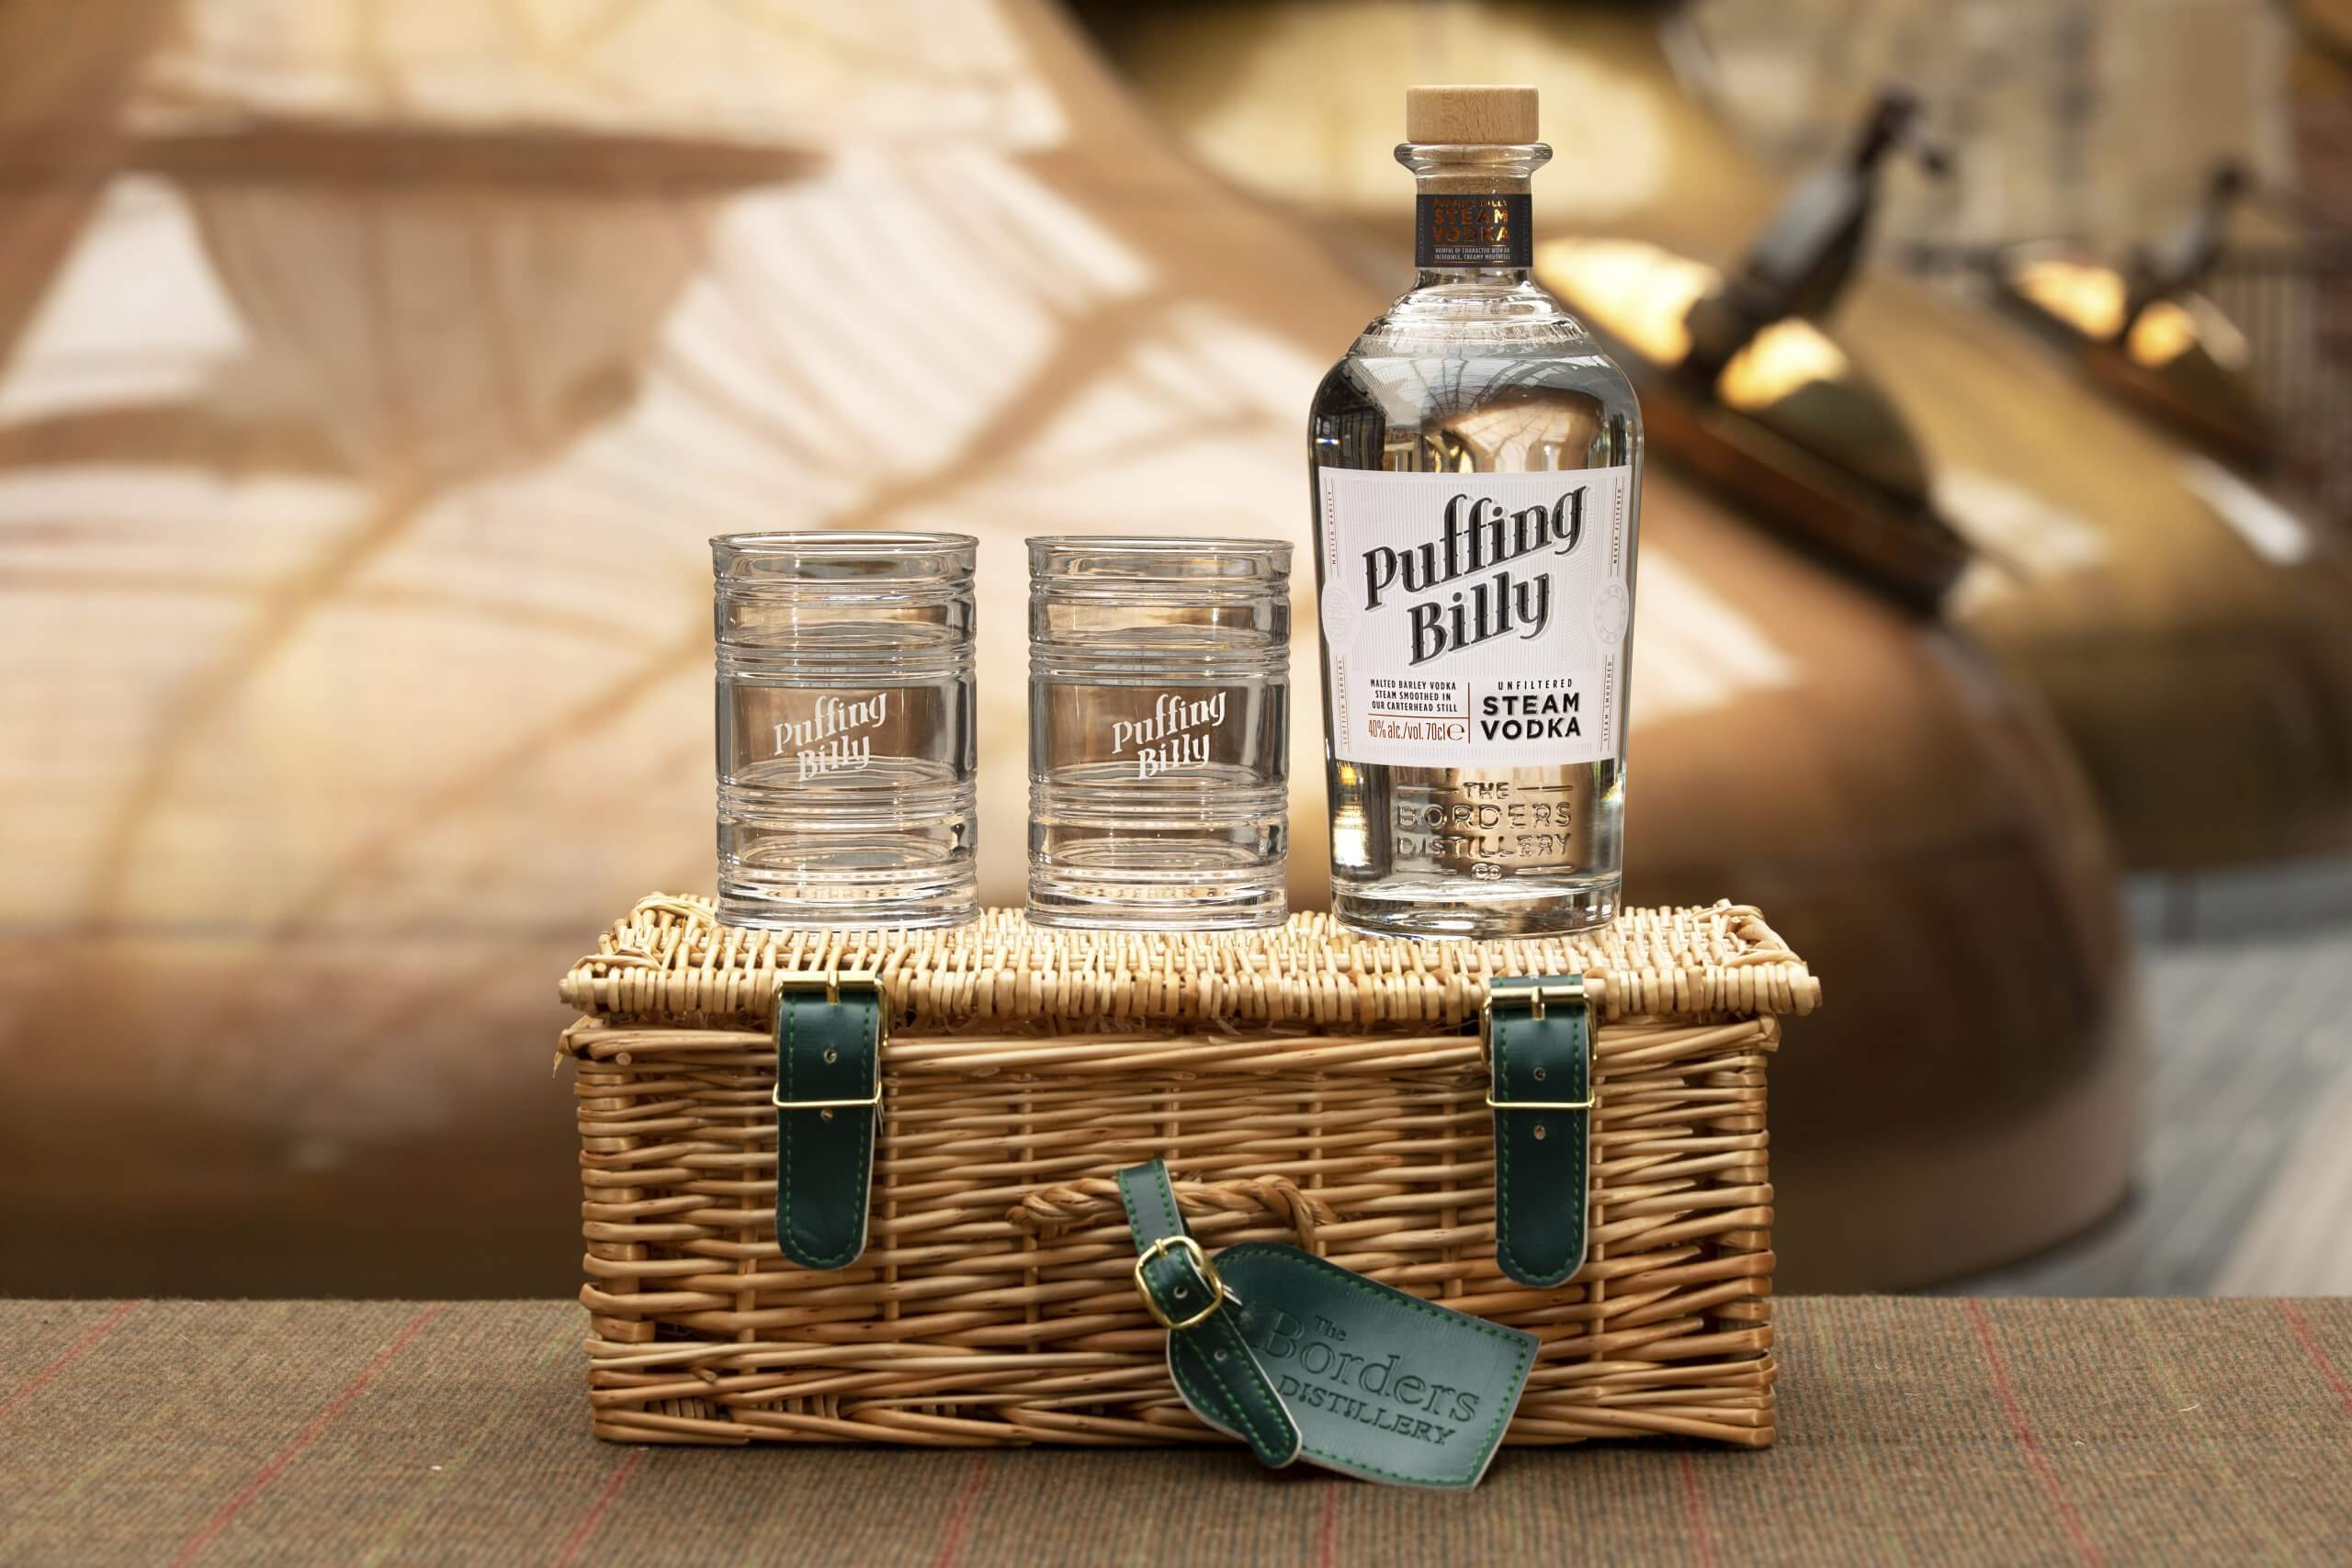 Puffing Billy Steam Vodka Hamper